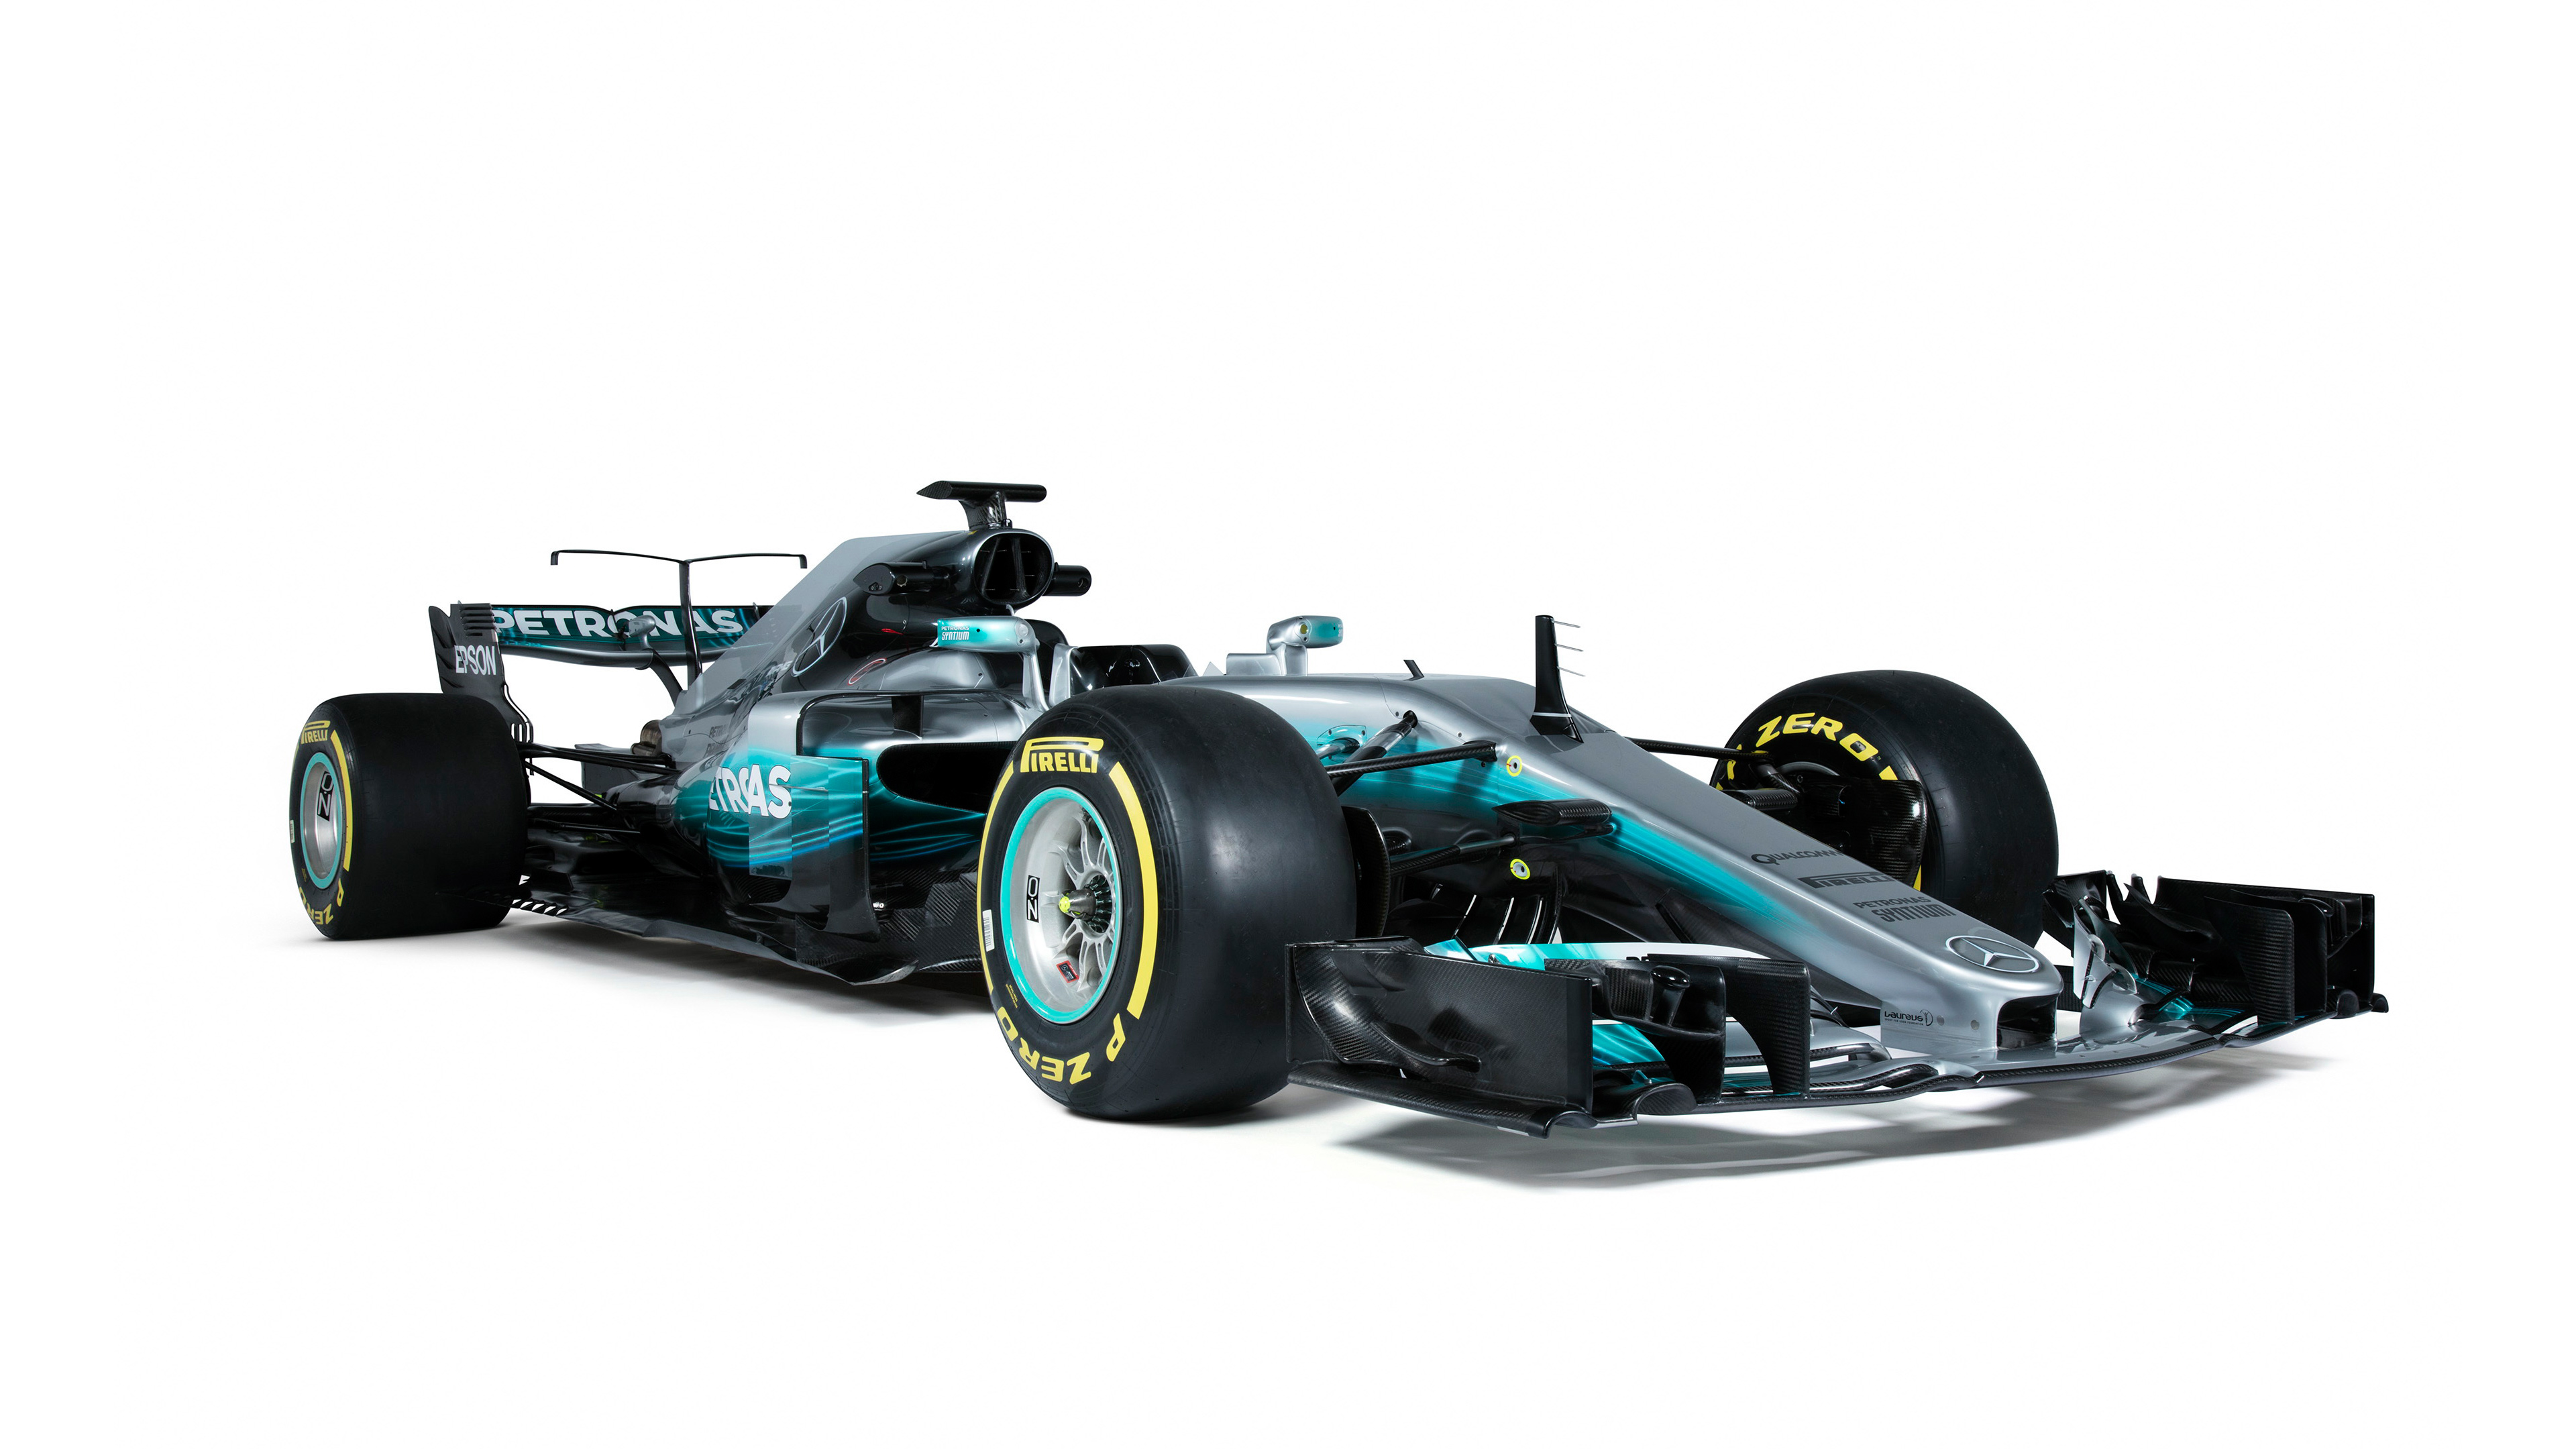 2017 mercedes amg f1 w08 eq power formula 1 car wallpaper for Mercedes benz f1